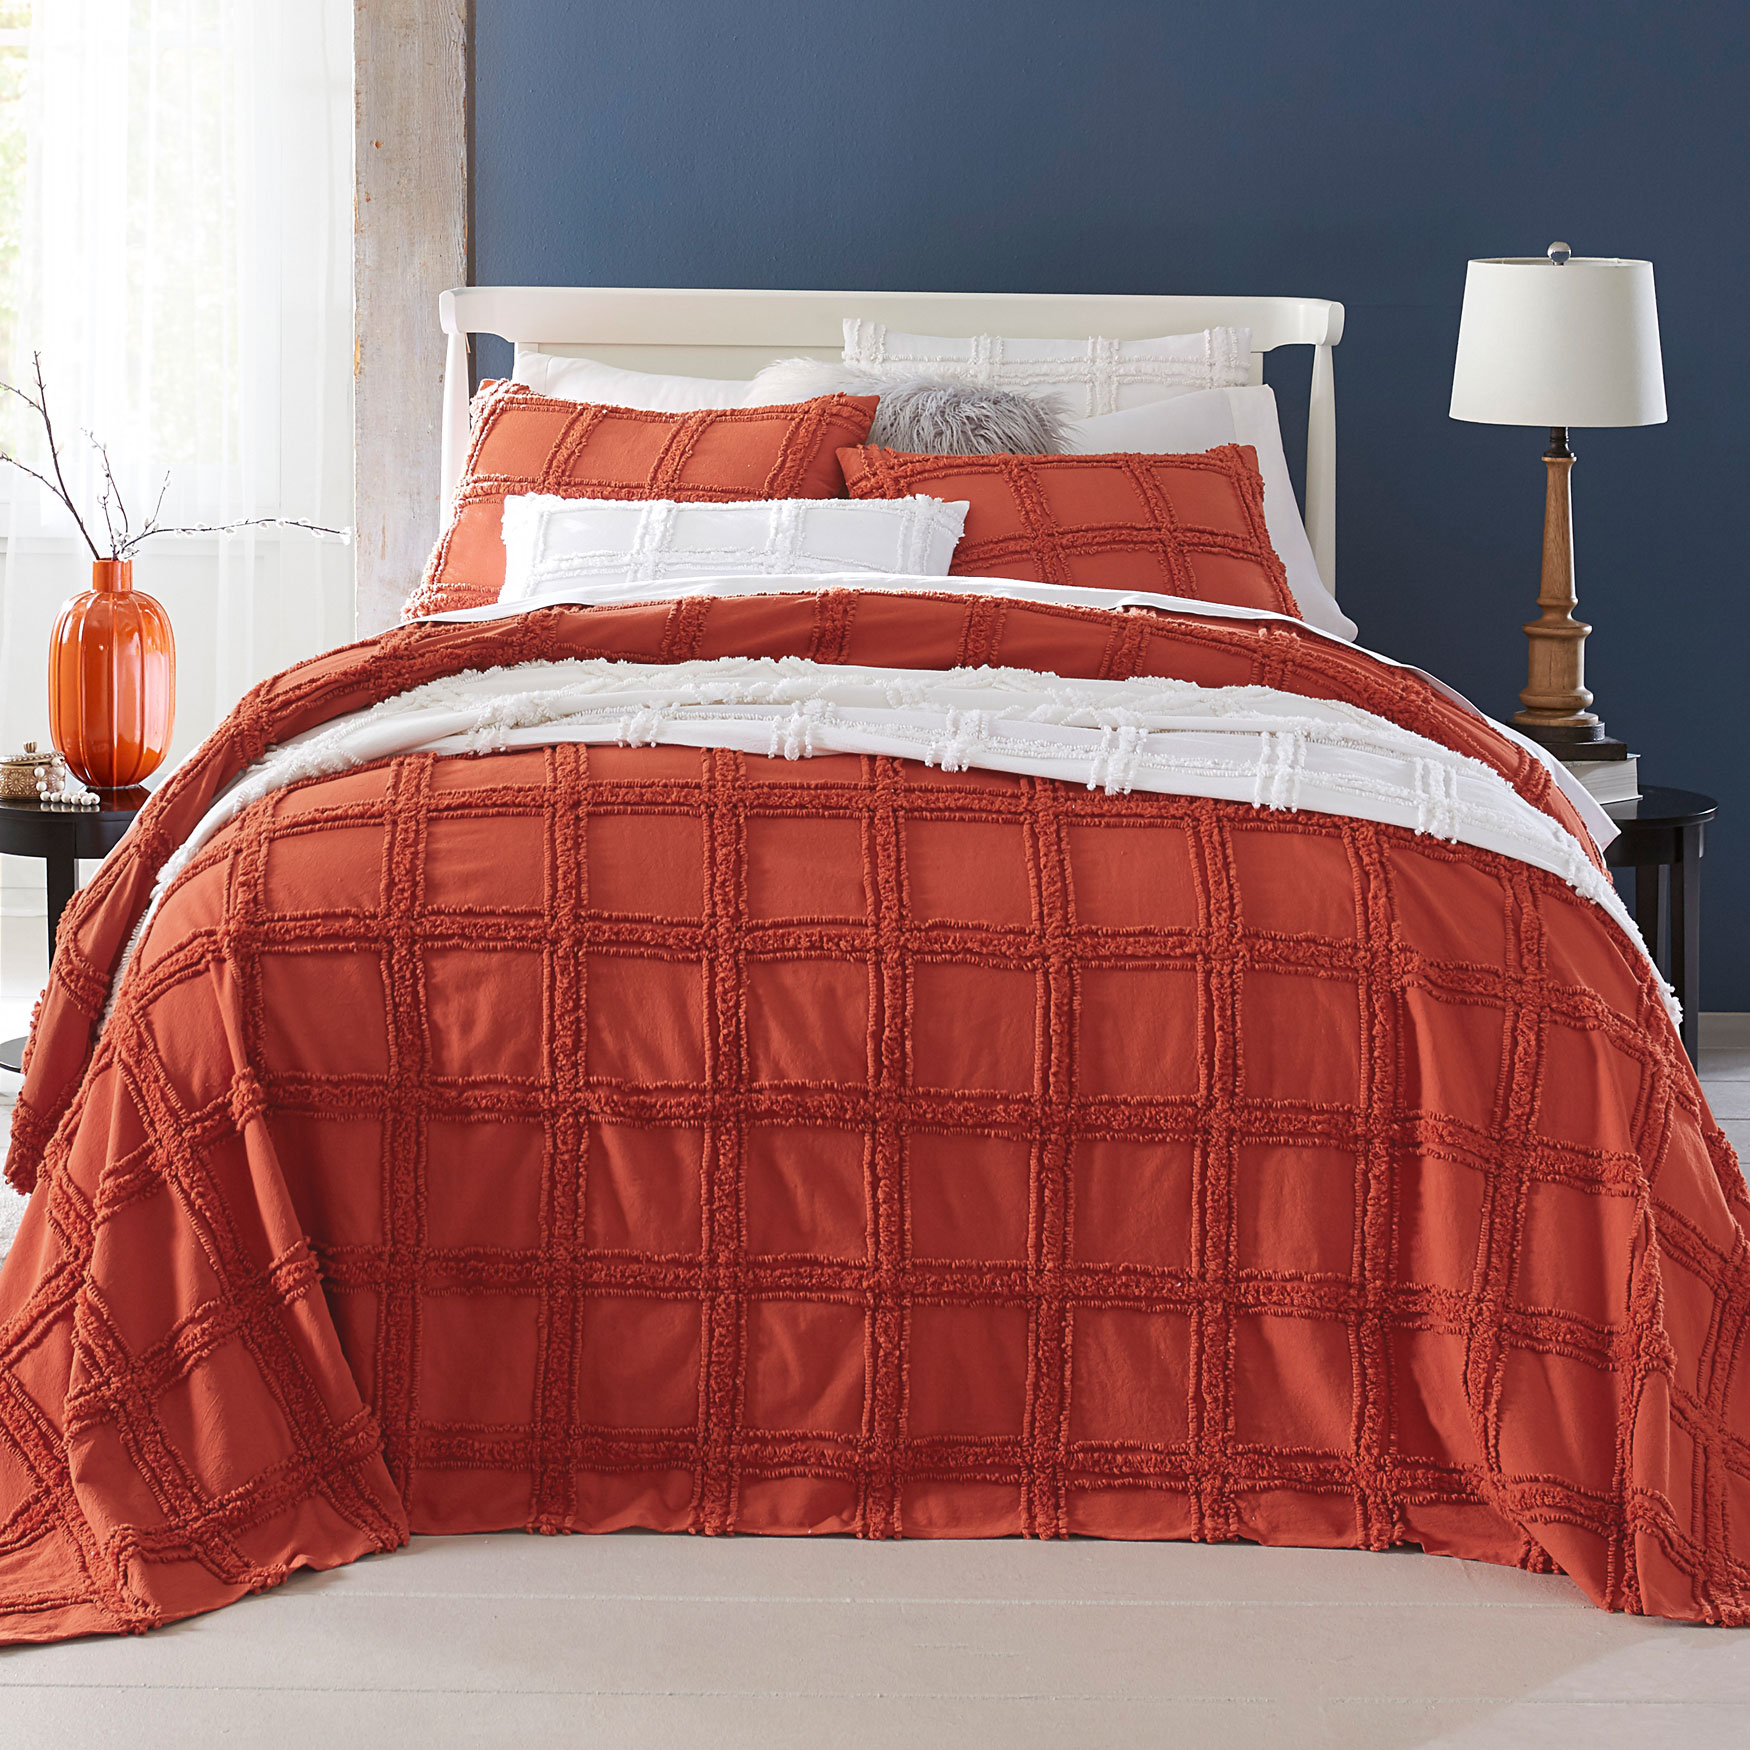 Window Pane Chenille Bedspread,